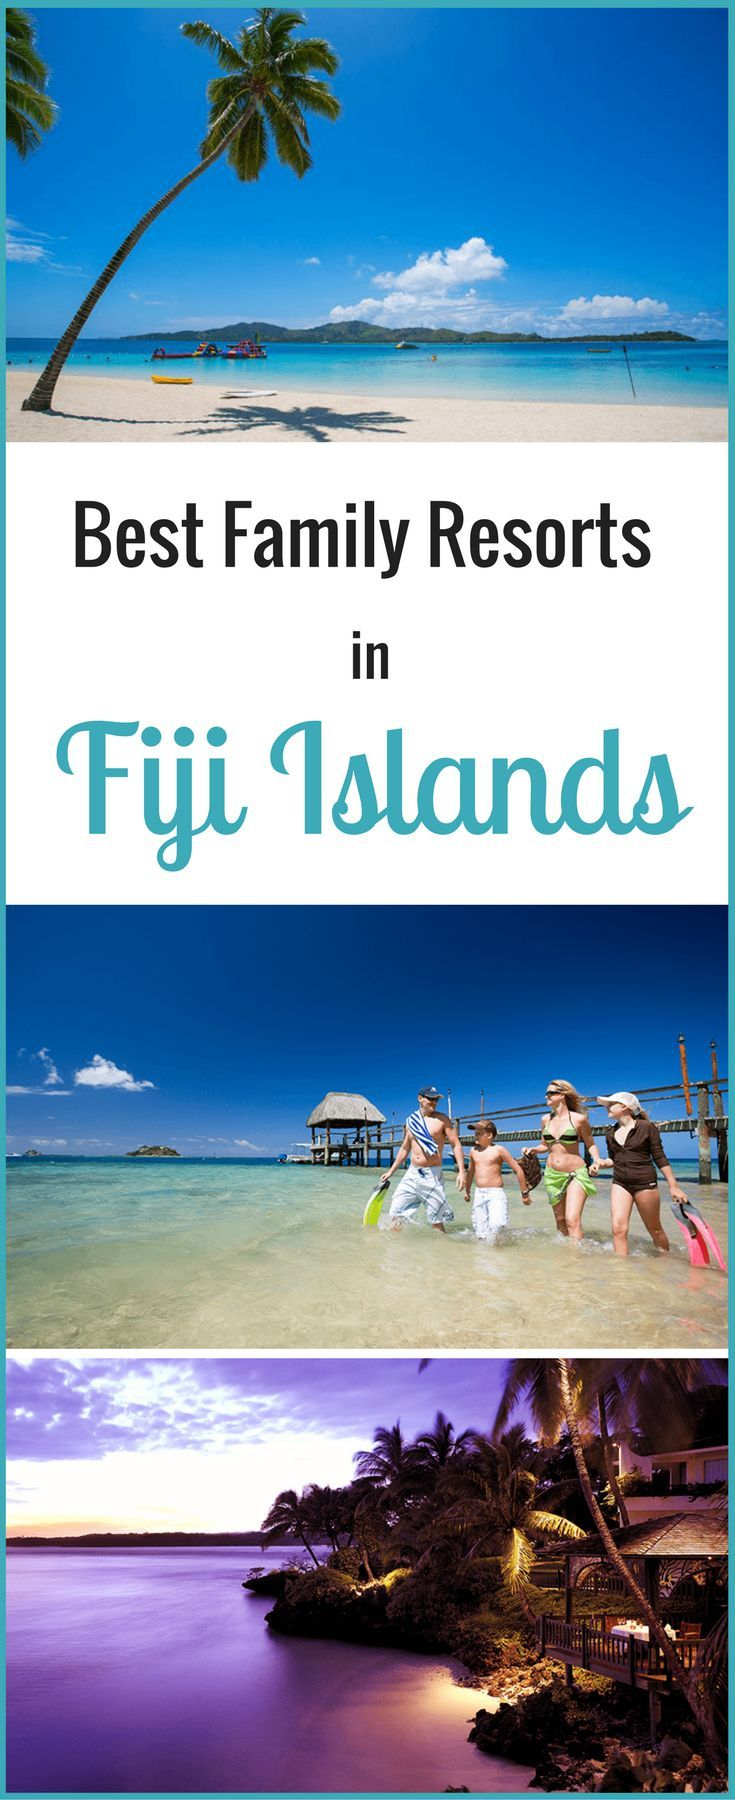 Best family resorts in Fiji. Planning a Fiji family holiday? Need tips on where to stay in Fiji? Here are the 5 Best Family Resorts in Fiji for your family holiday to the Fijian Islands. FamilyTravel #Fiji